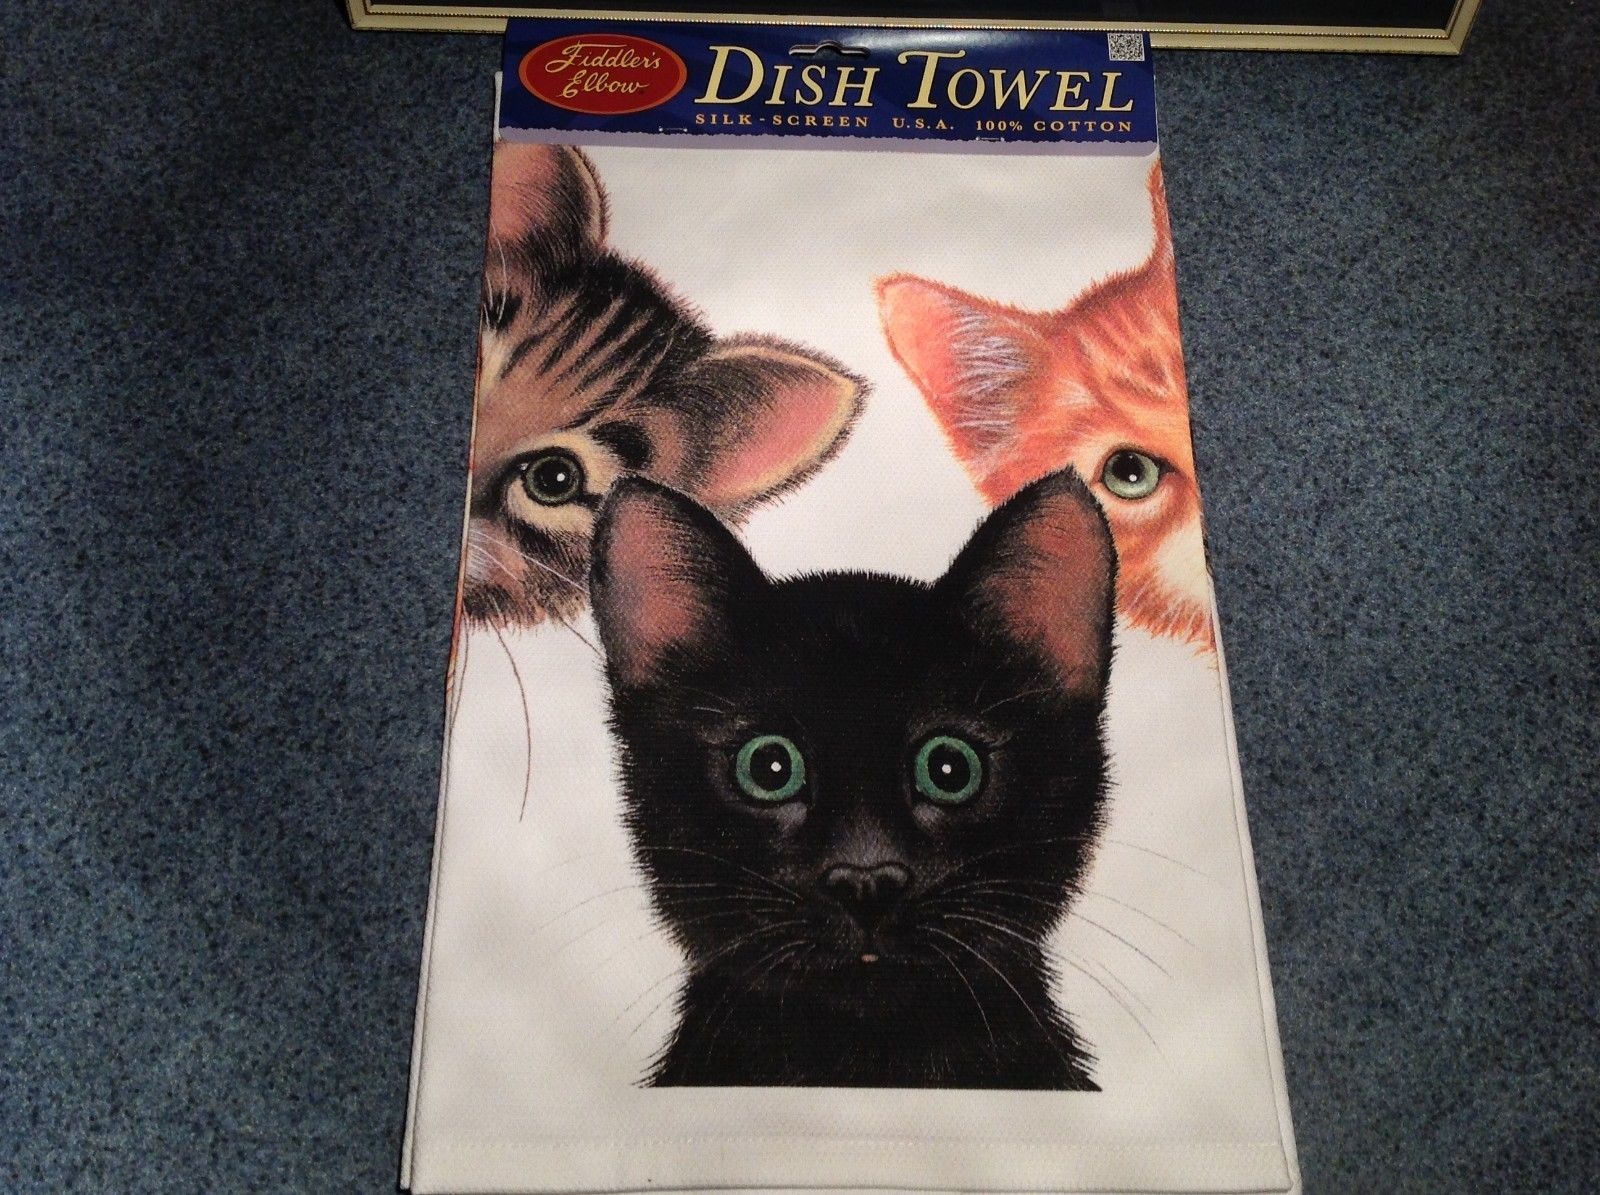 Kitchen Cotton Towel Profile Made in USA Kittens Black Orange and Tabby